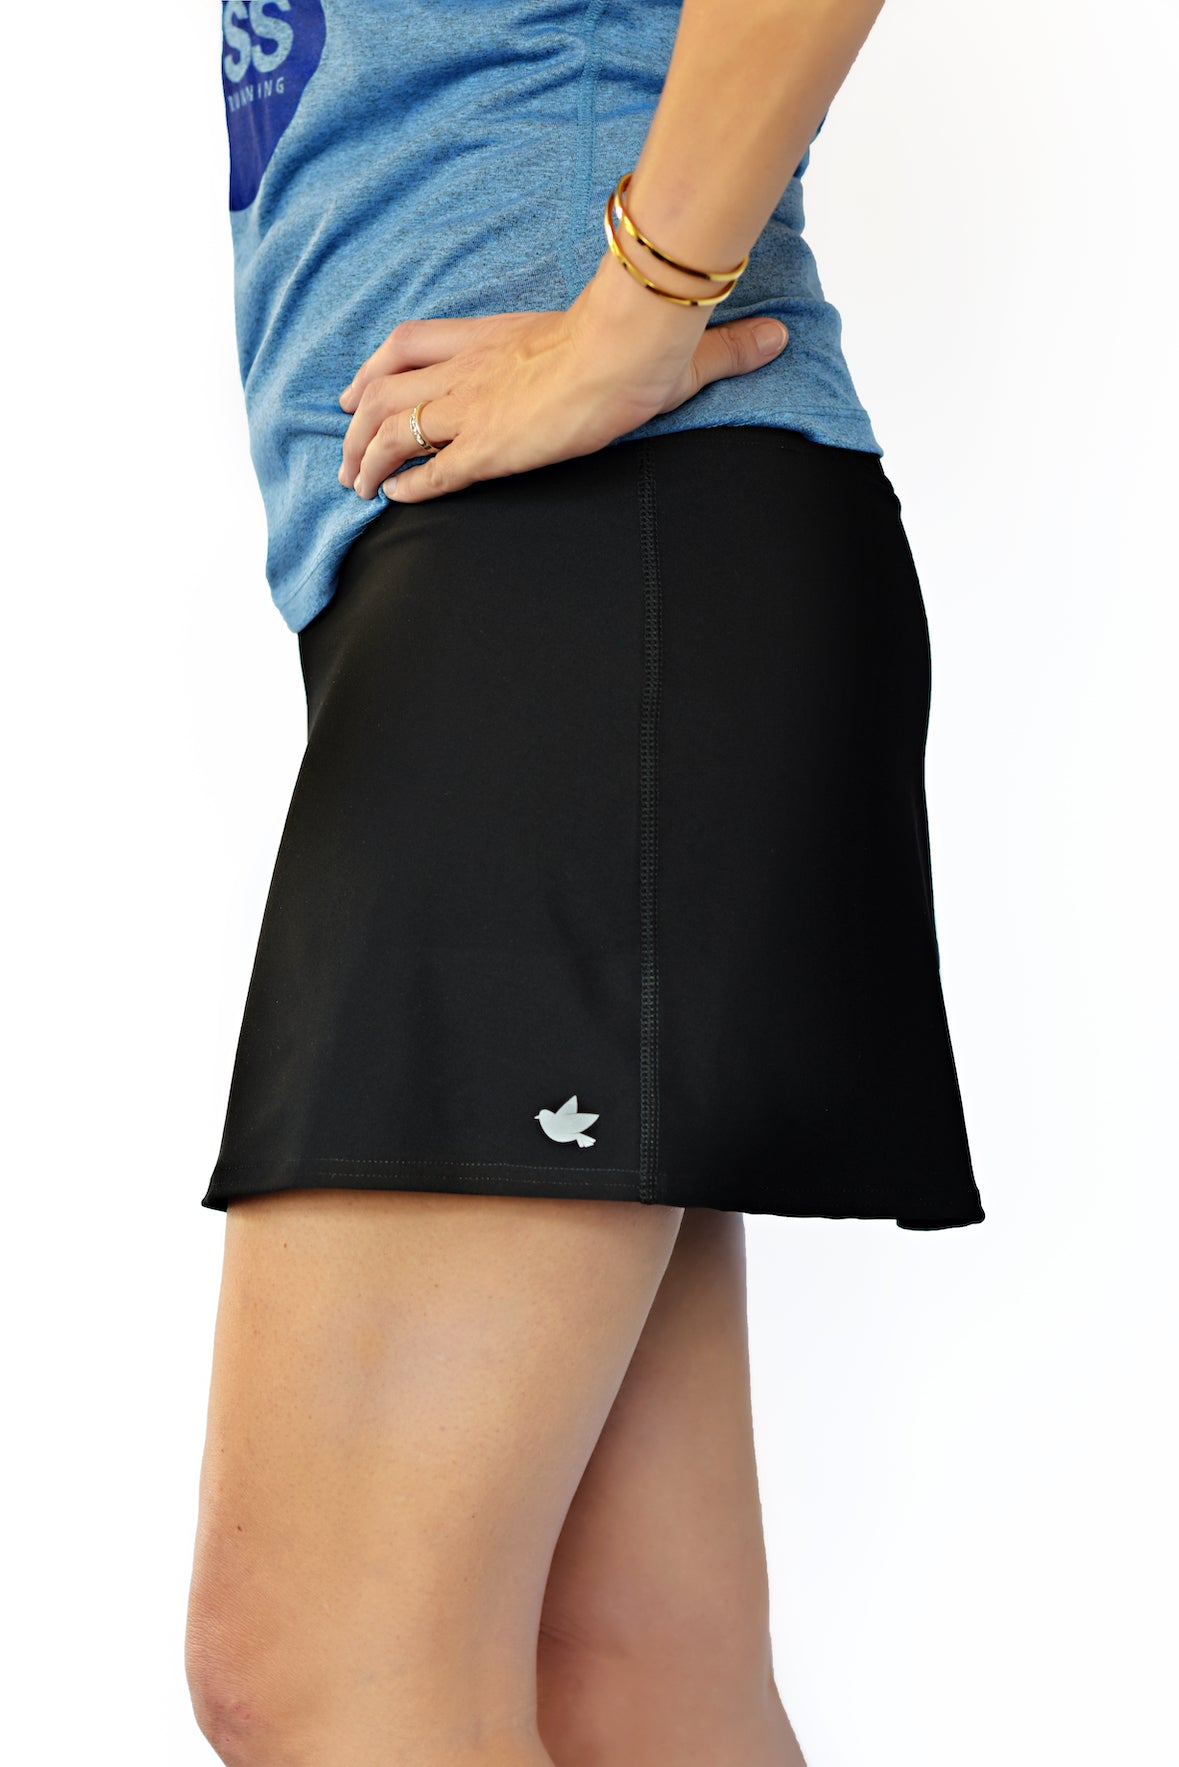 cool running skirt black front view